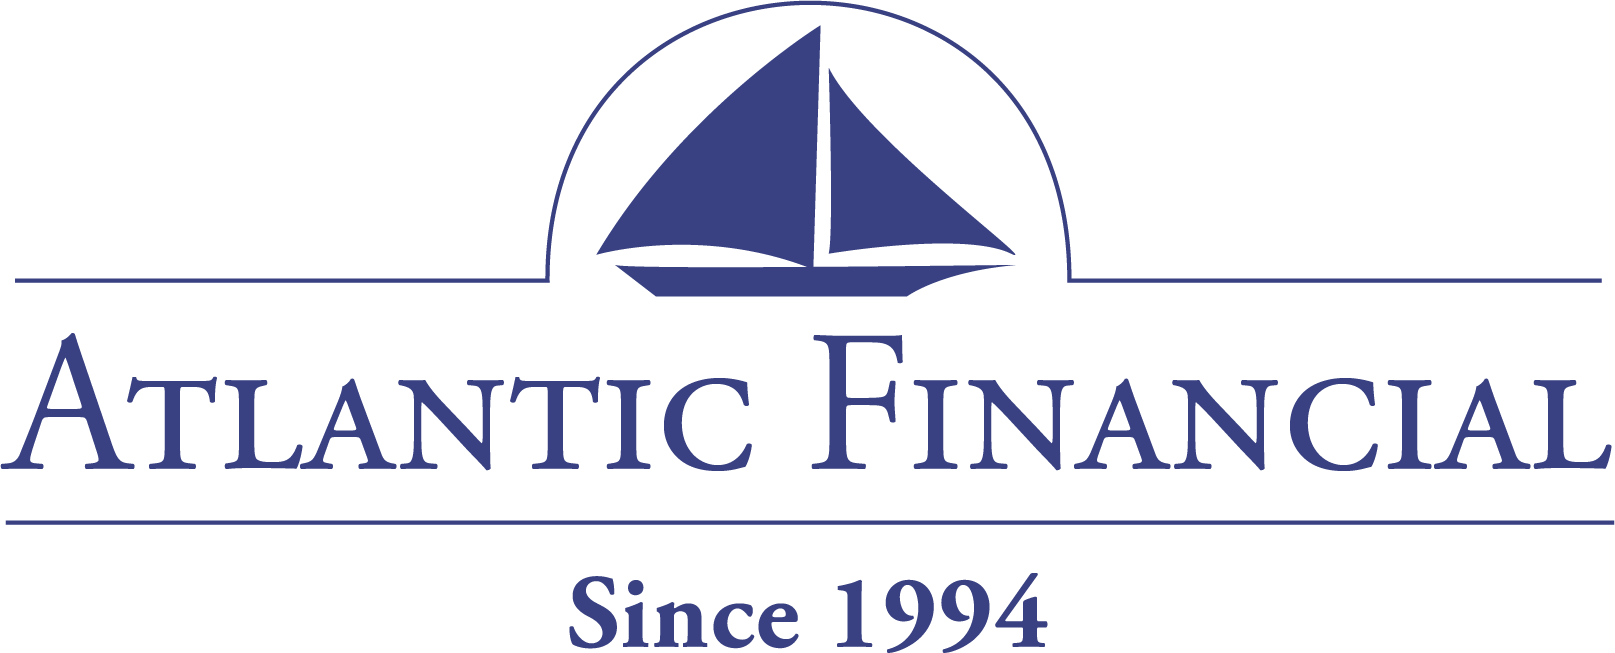 WELCOME TO ATLANTIC FINANCIAL